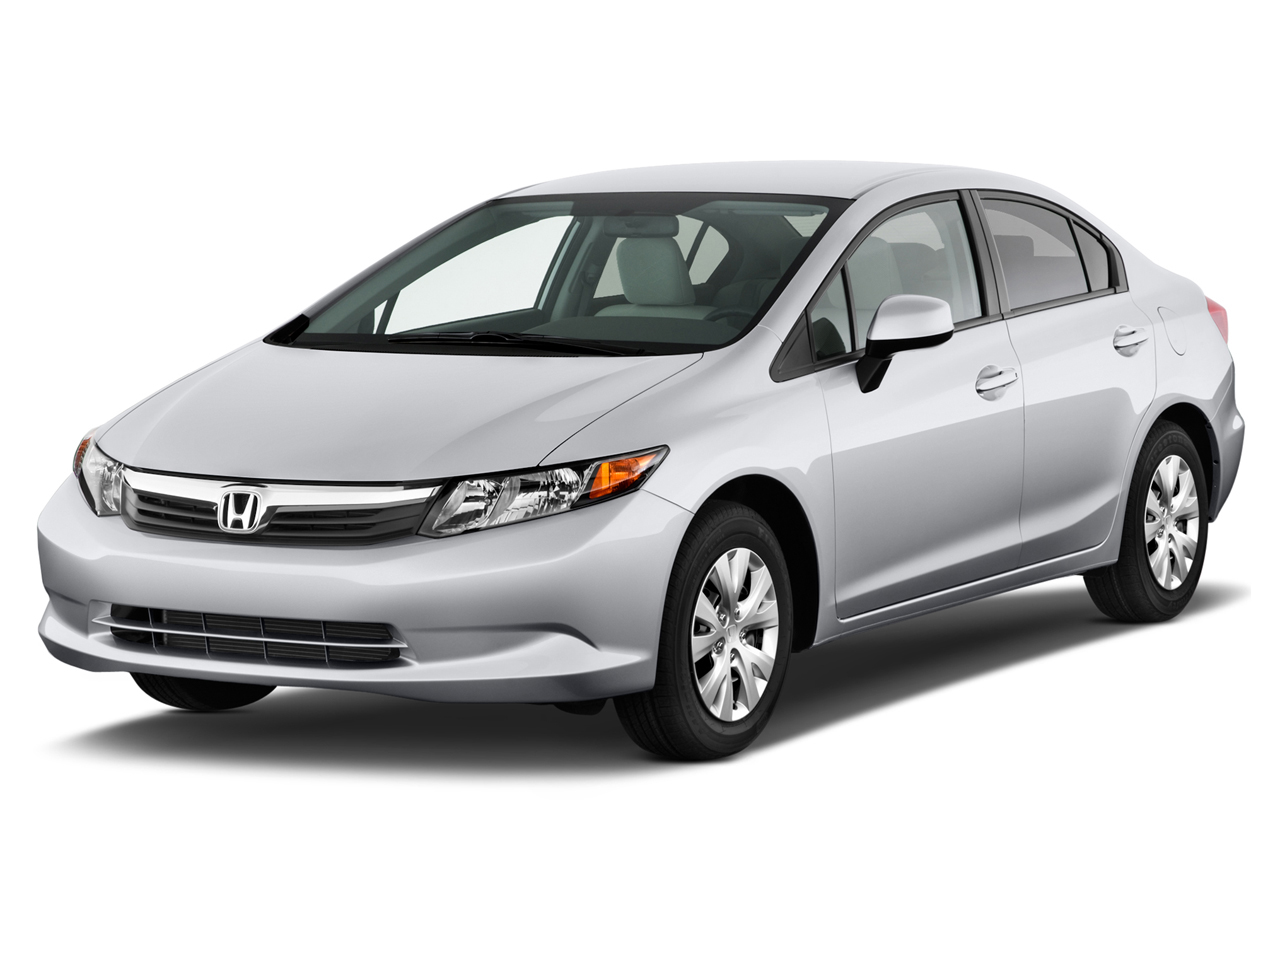 Rims Honda Civic 2012 2012 Honda Civic Review